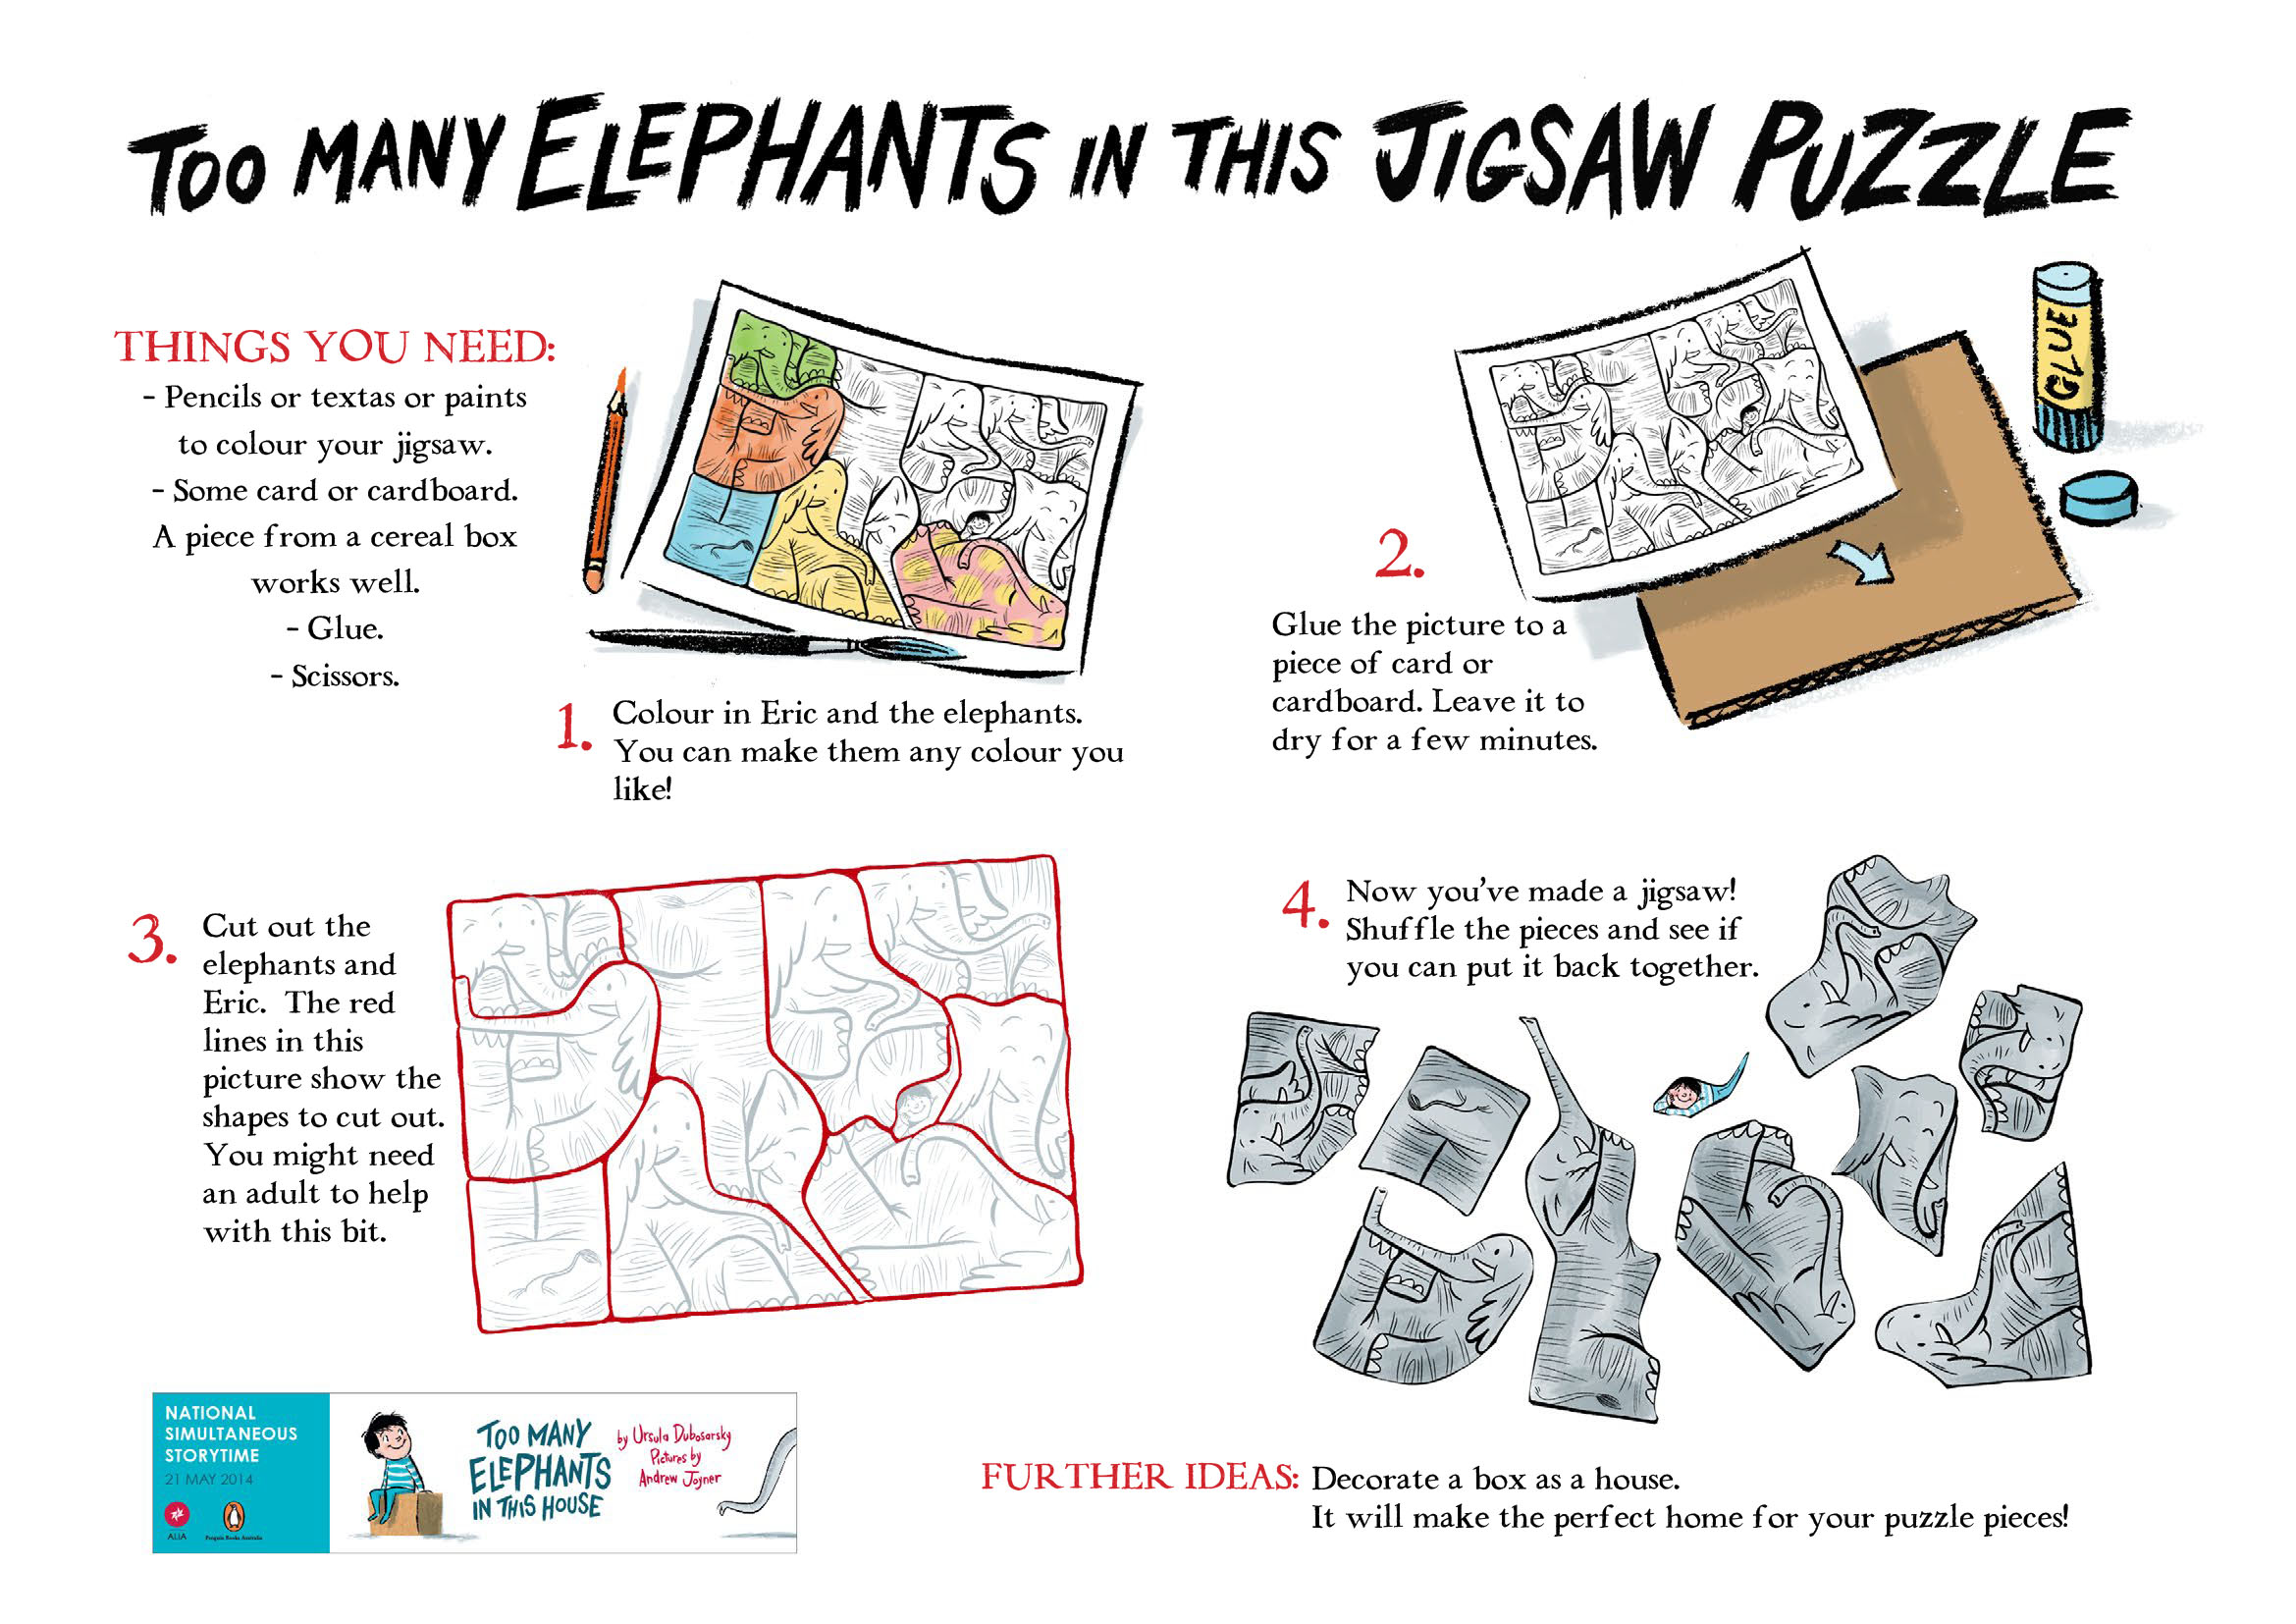 too many elephants in this jigsaw puzzle